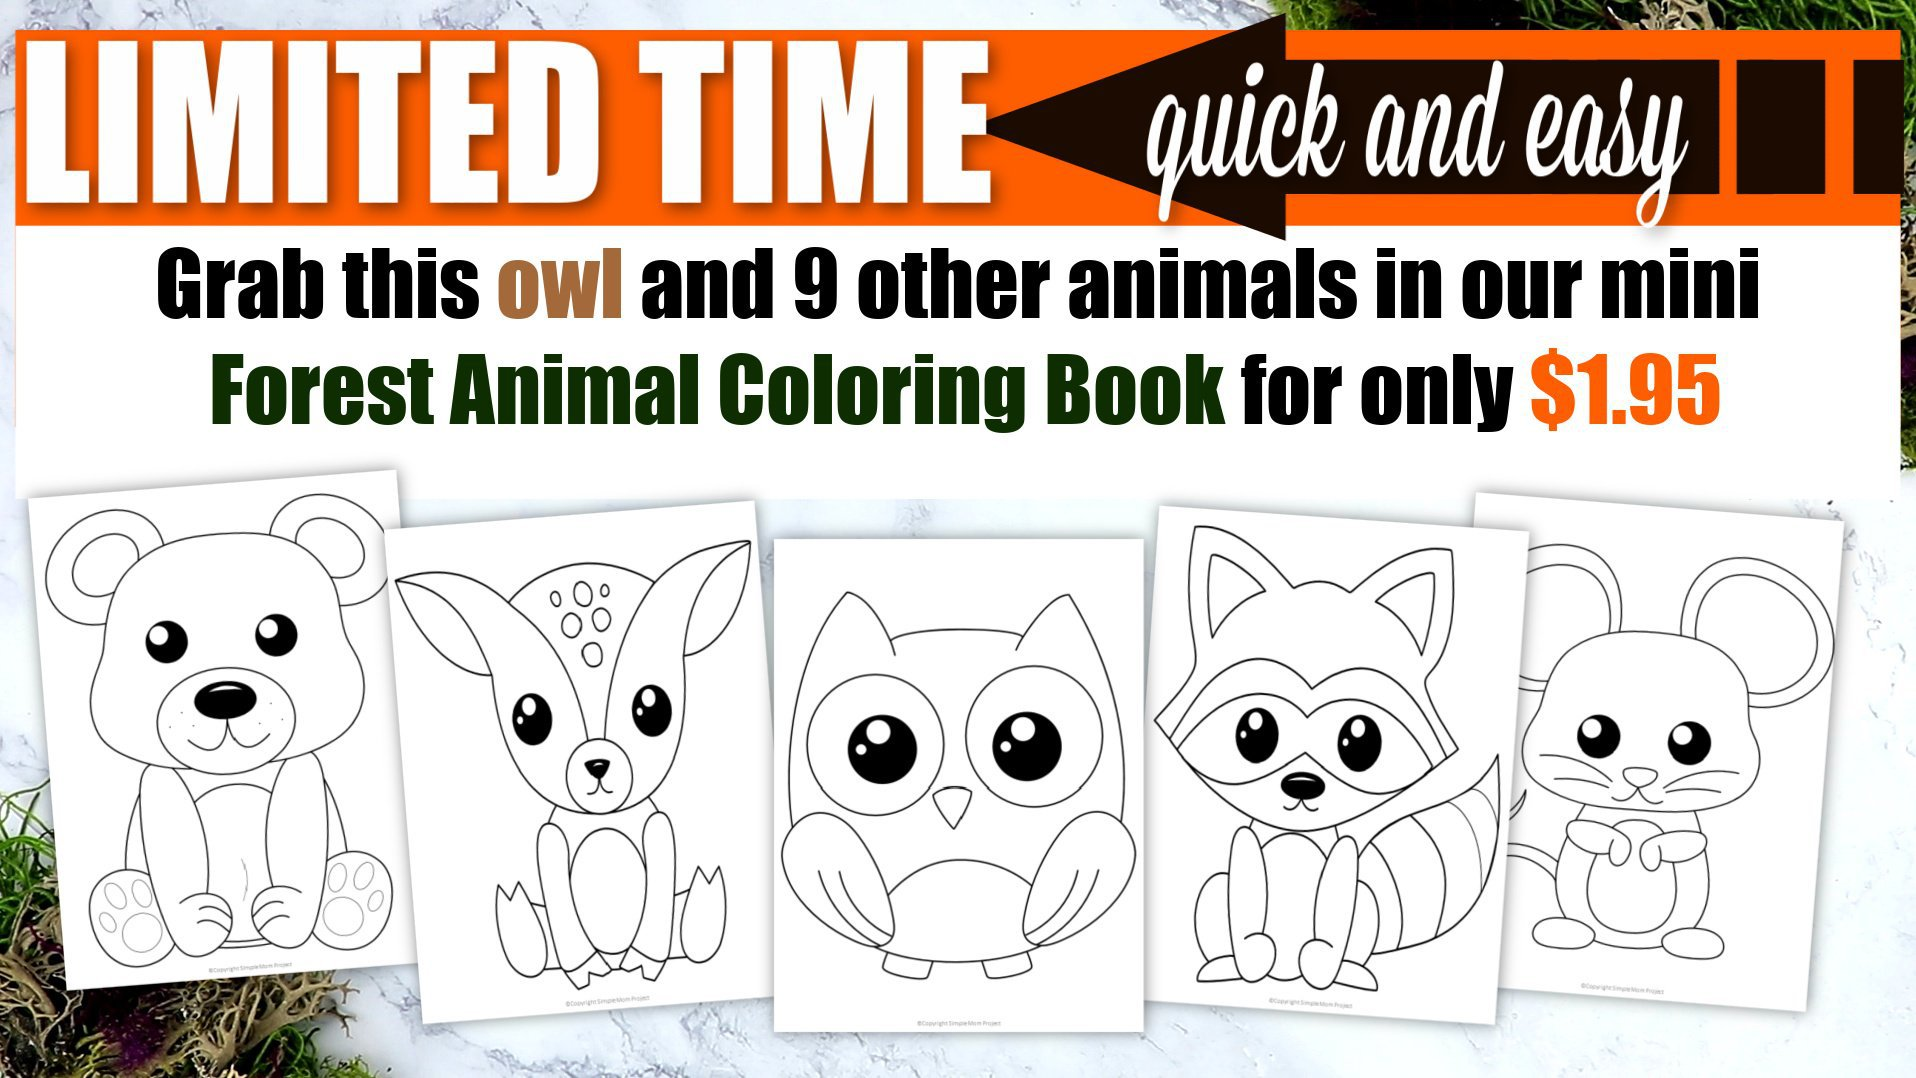 Printable Woodland Forest owl Coloring Page for Kids Preschoolers Toddlers and kindergartners